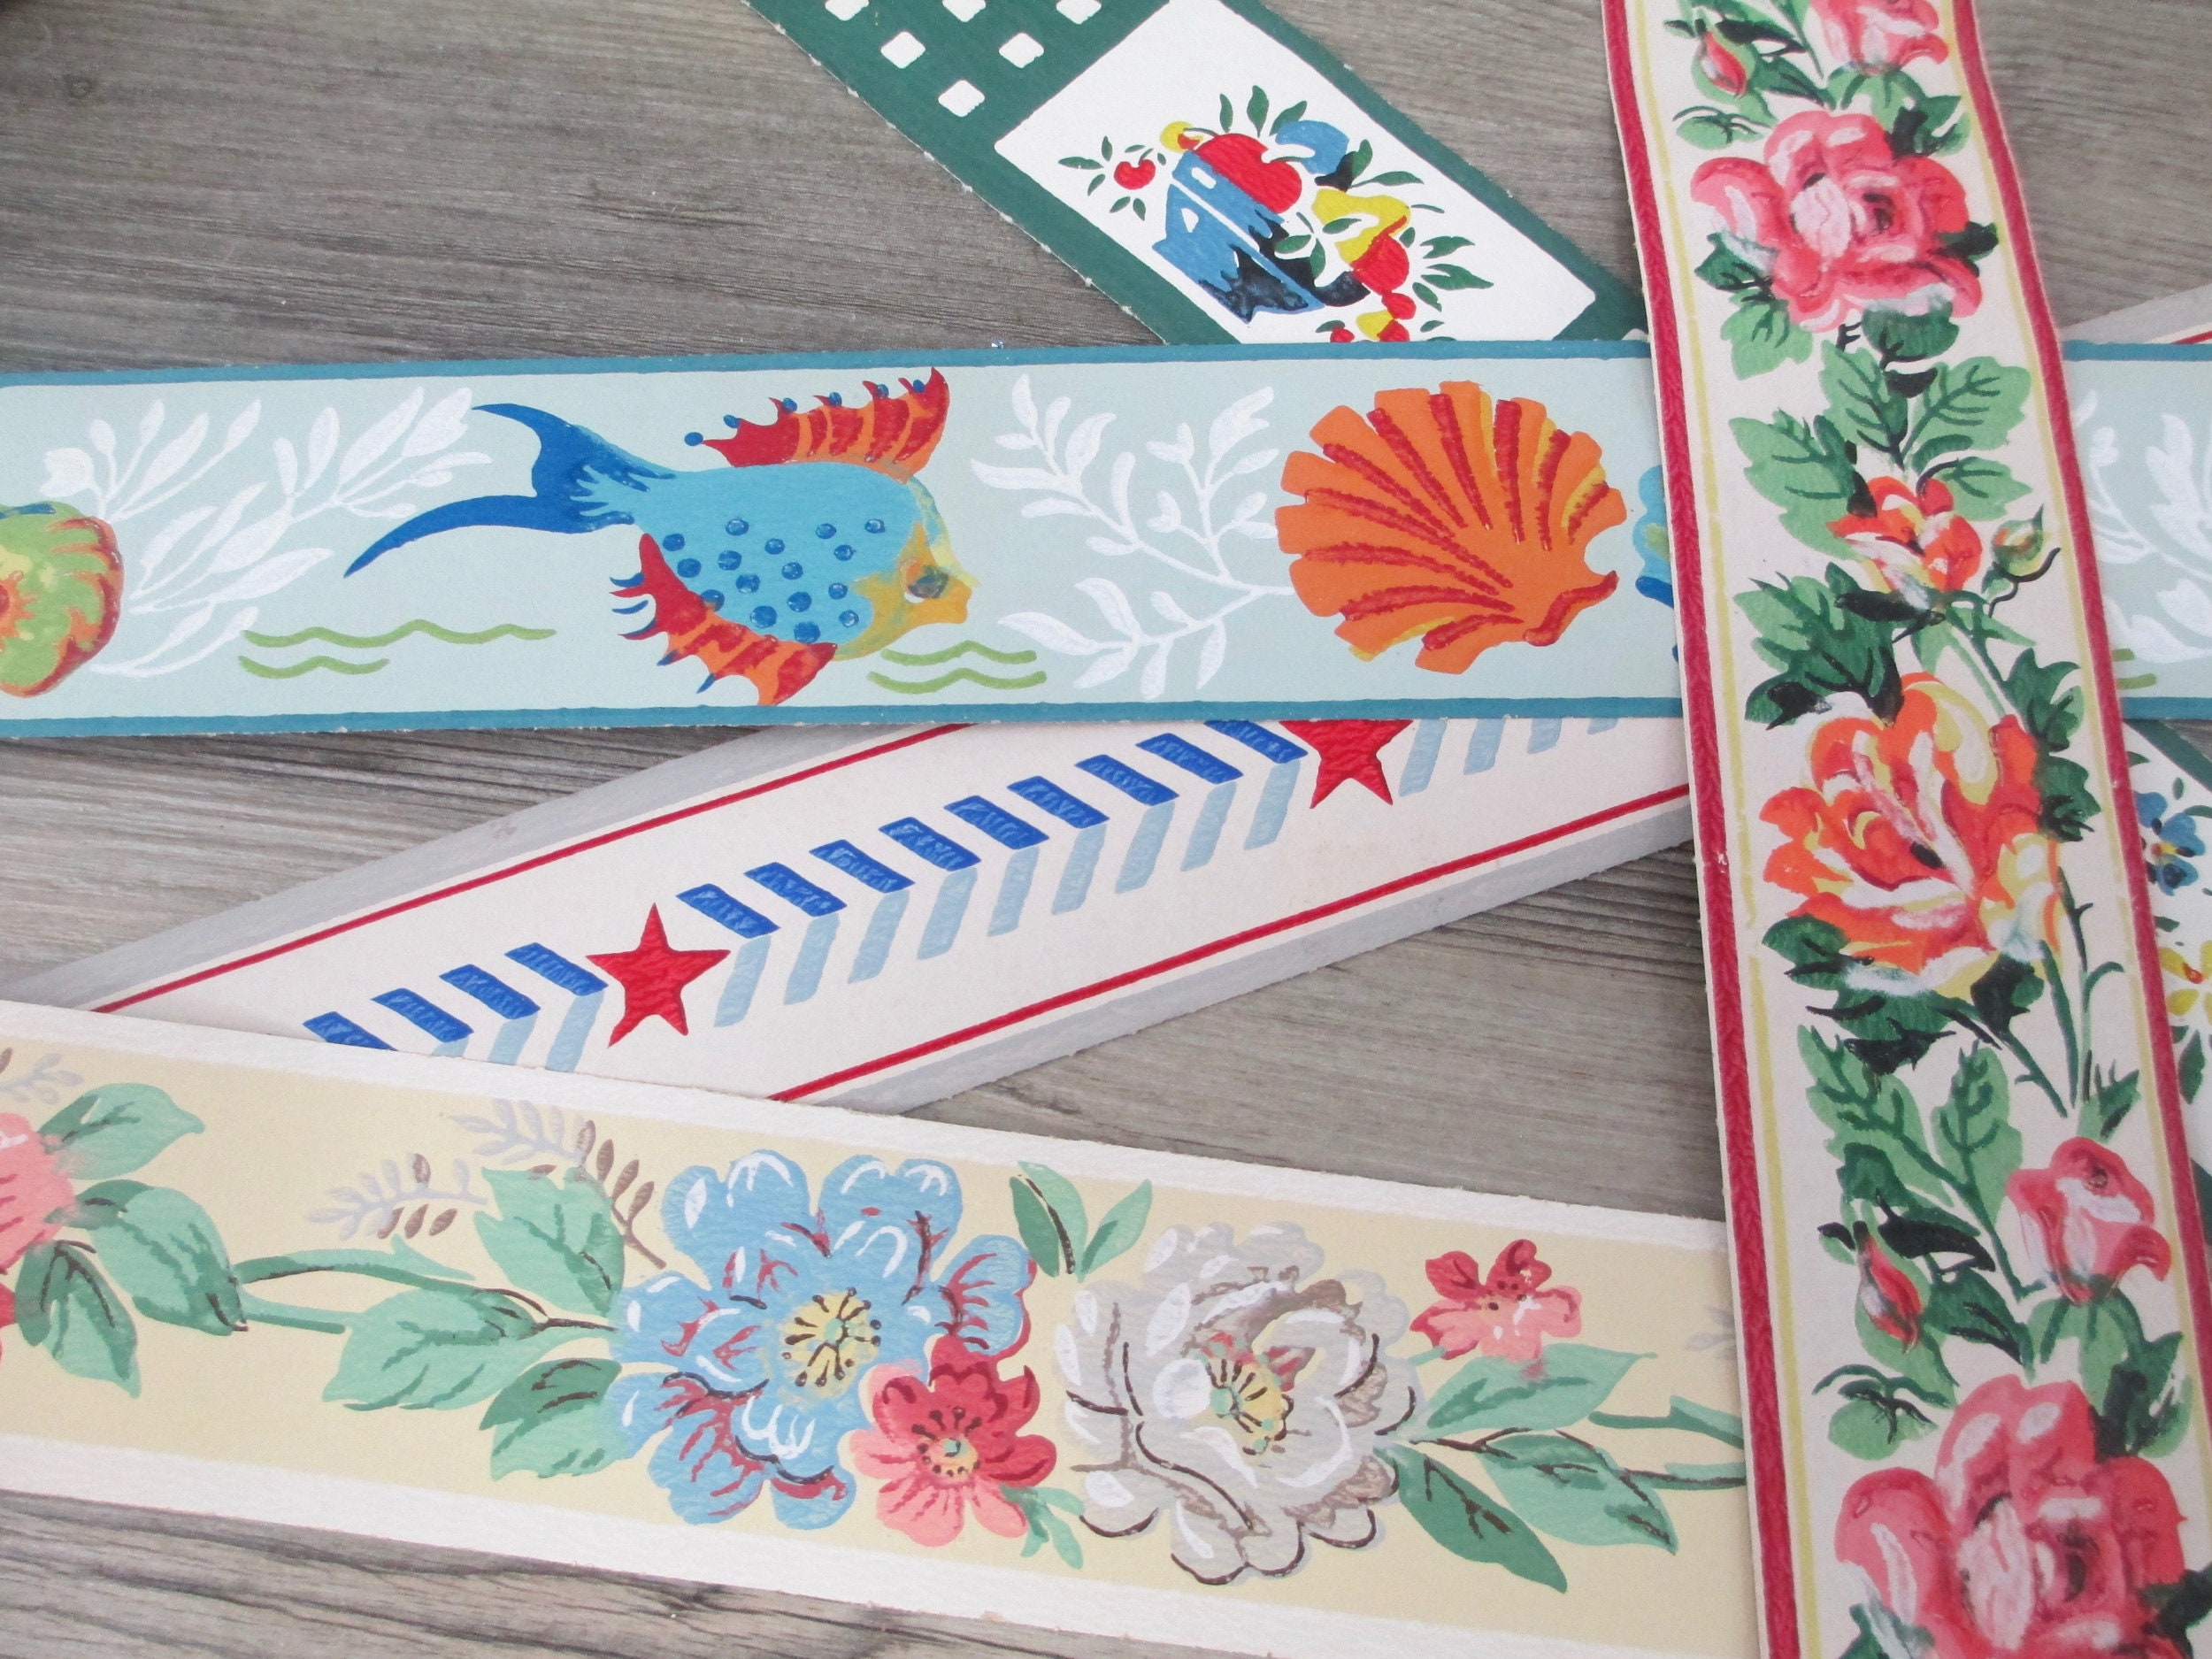 18 Feet Vintage Wallpaper Borders Wall Paper Border Lot Sample Etsy